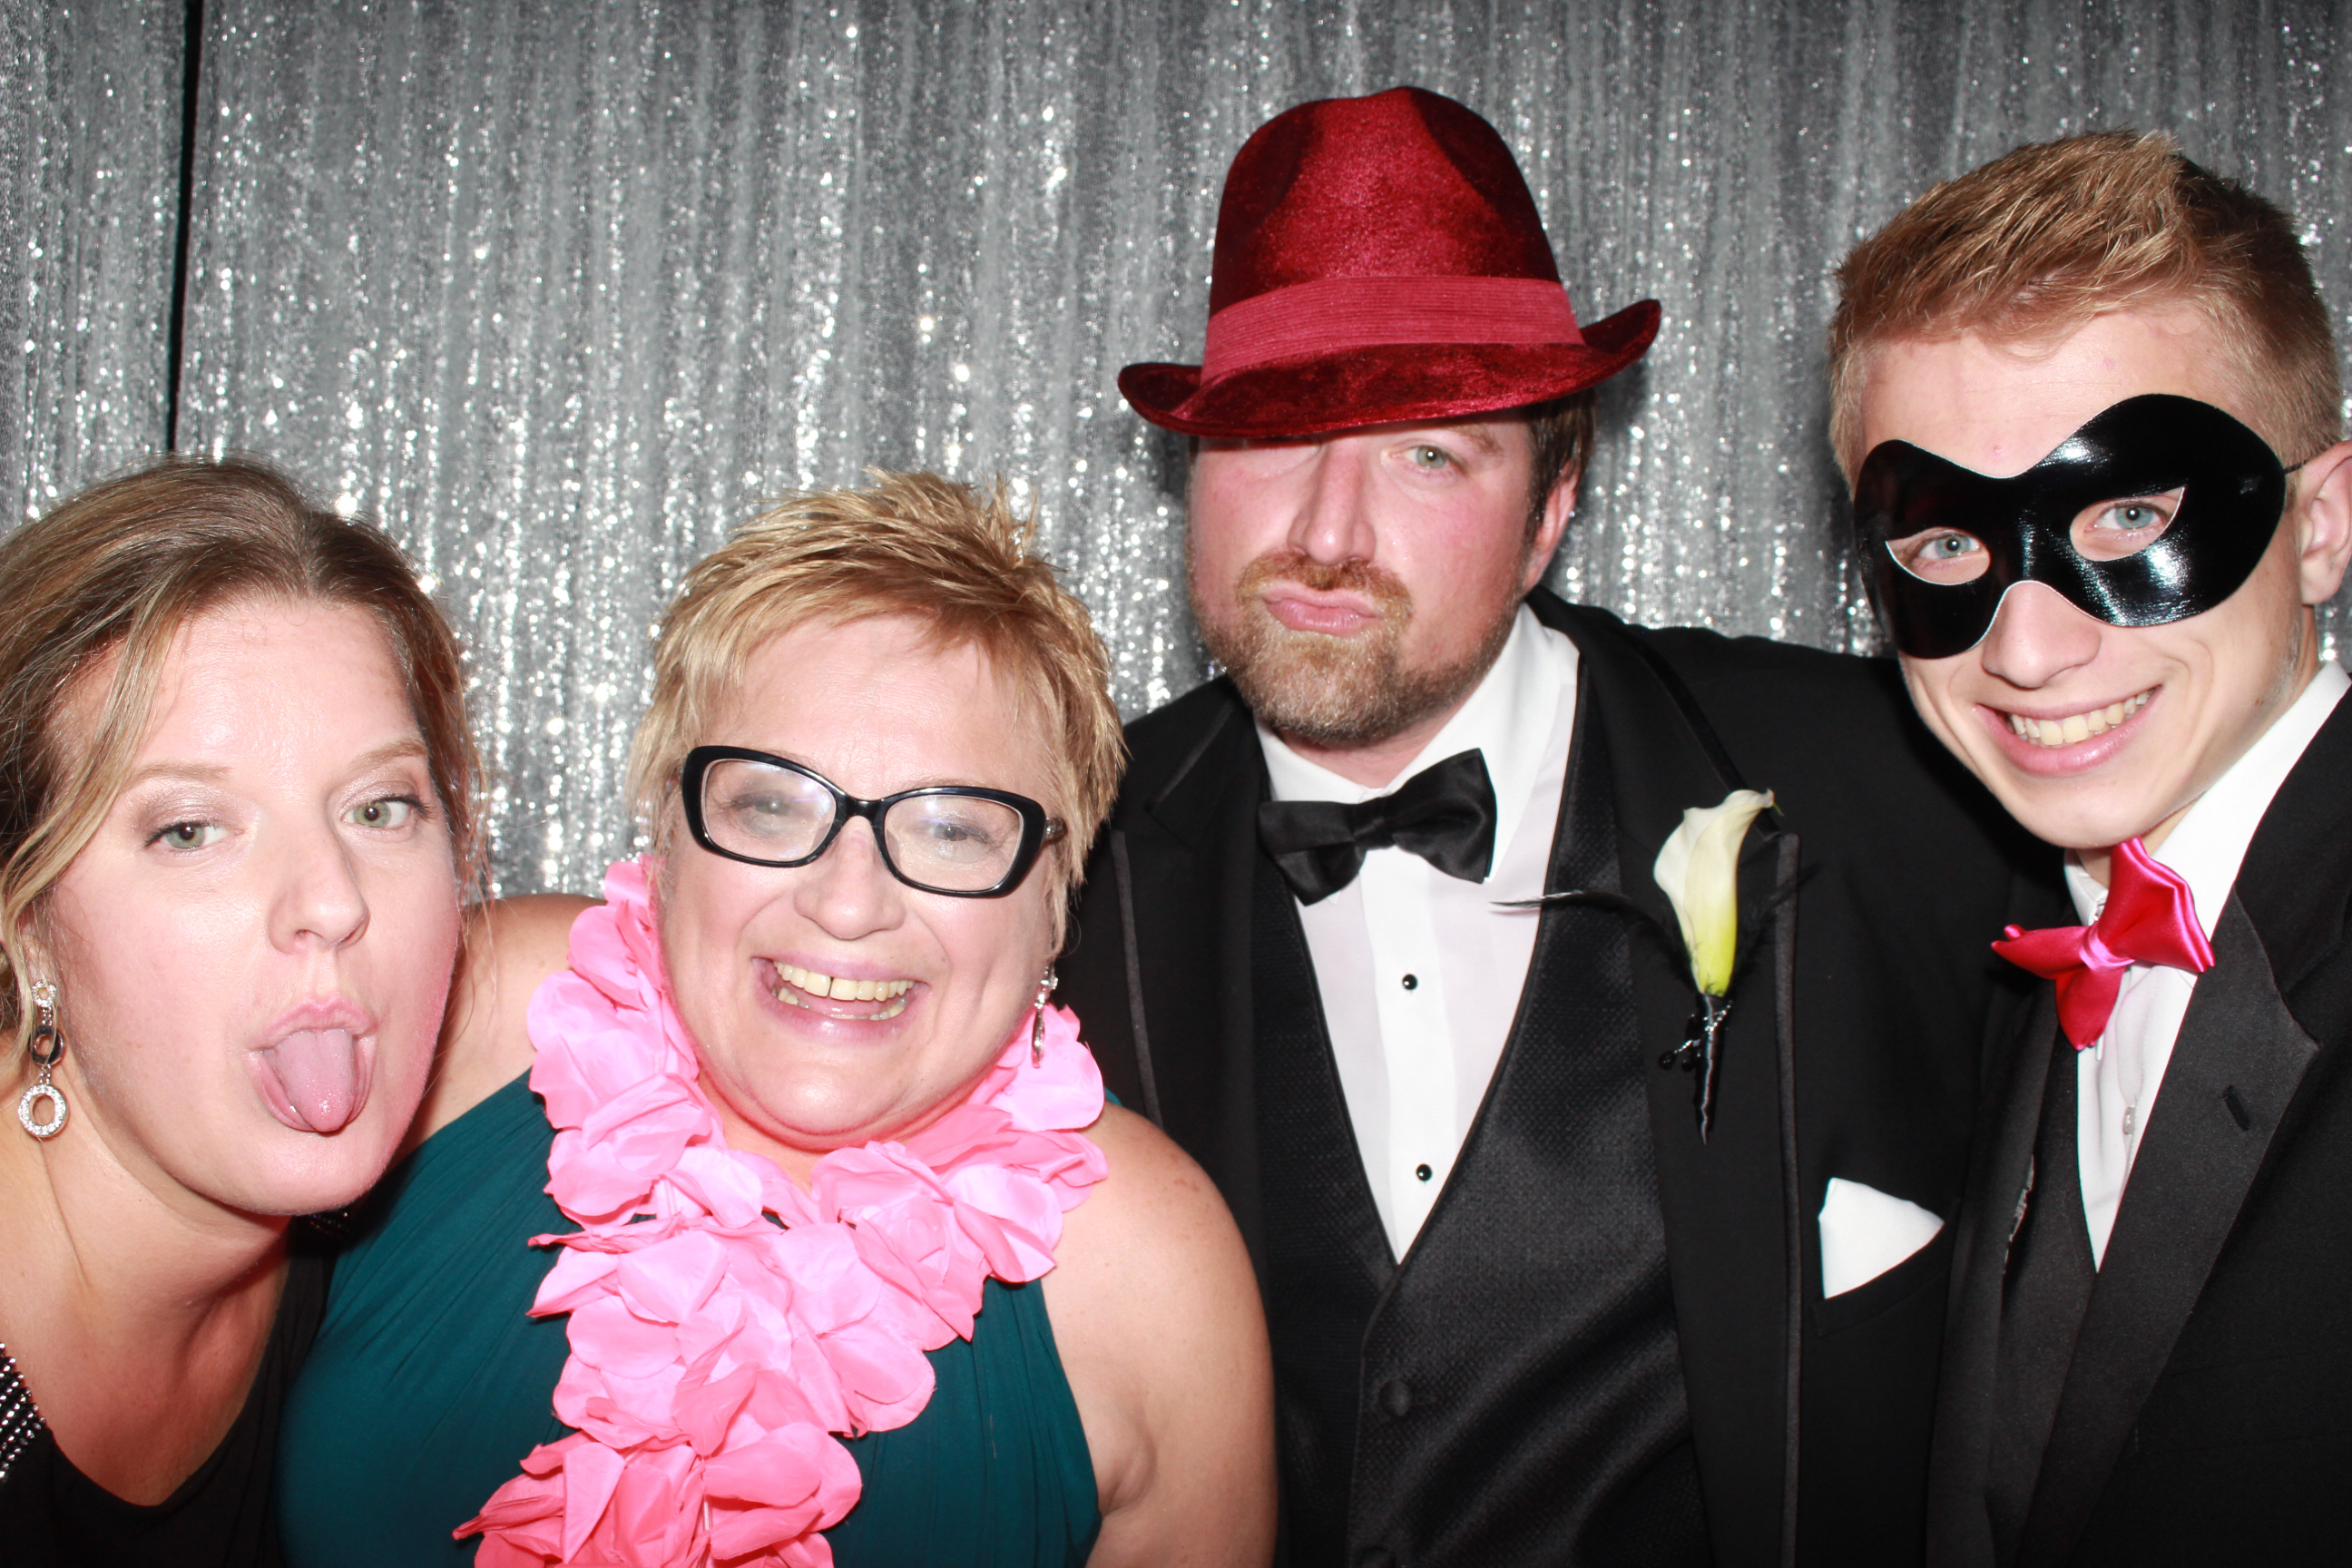 Wedding Photo Booth Rental Valpo